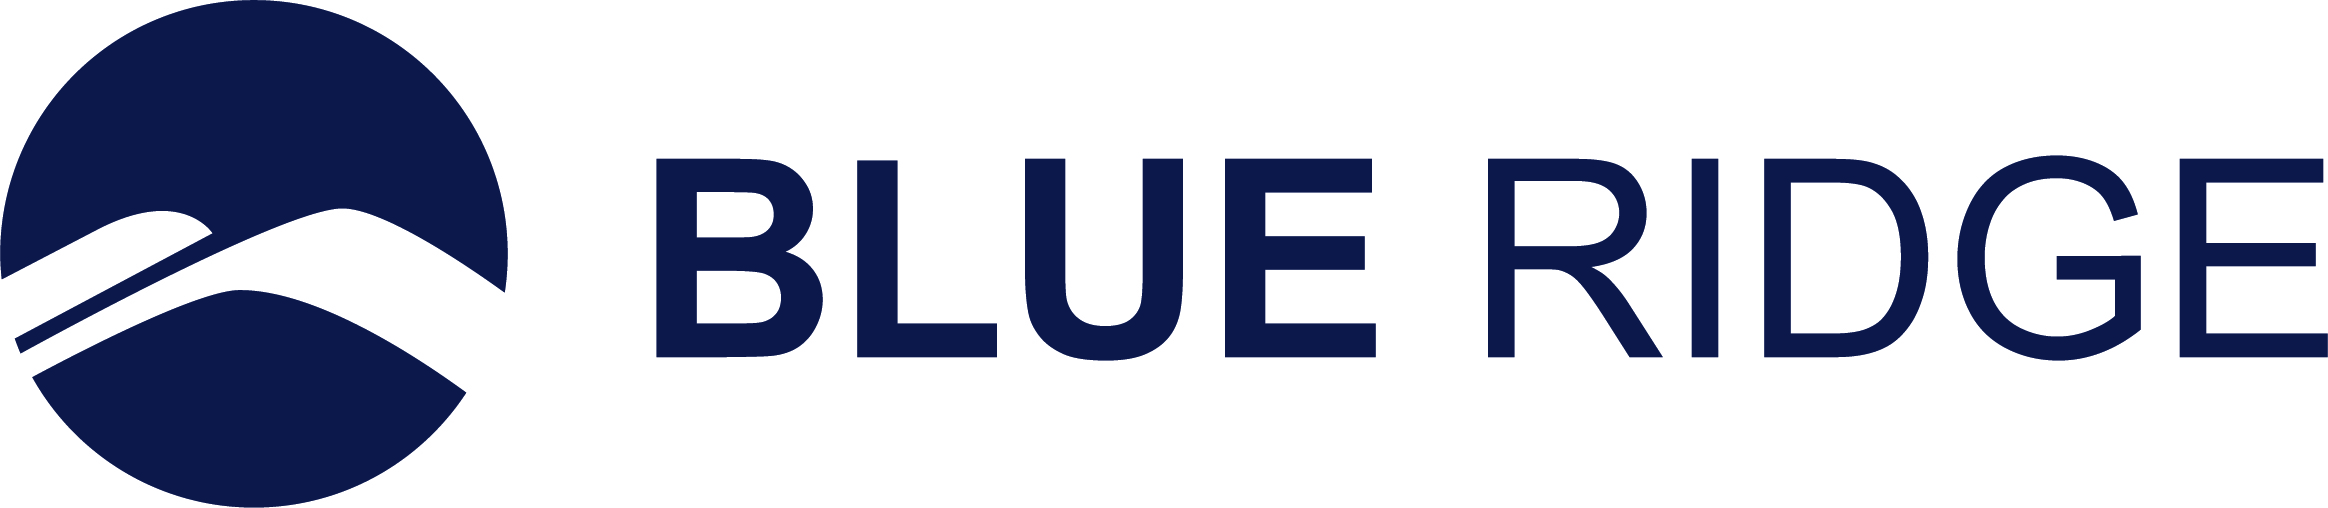 Blue Ridge and HARDI to Host Webinar Addressing HVAC, Plumbing and Electrical Distributors' Supply Chain Challenges